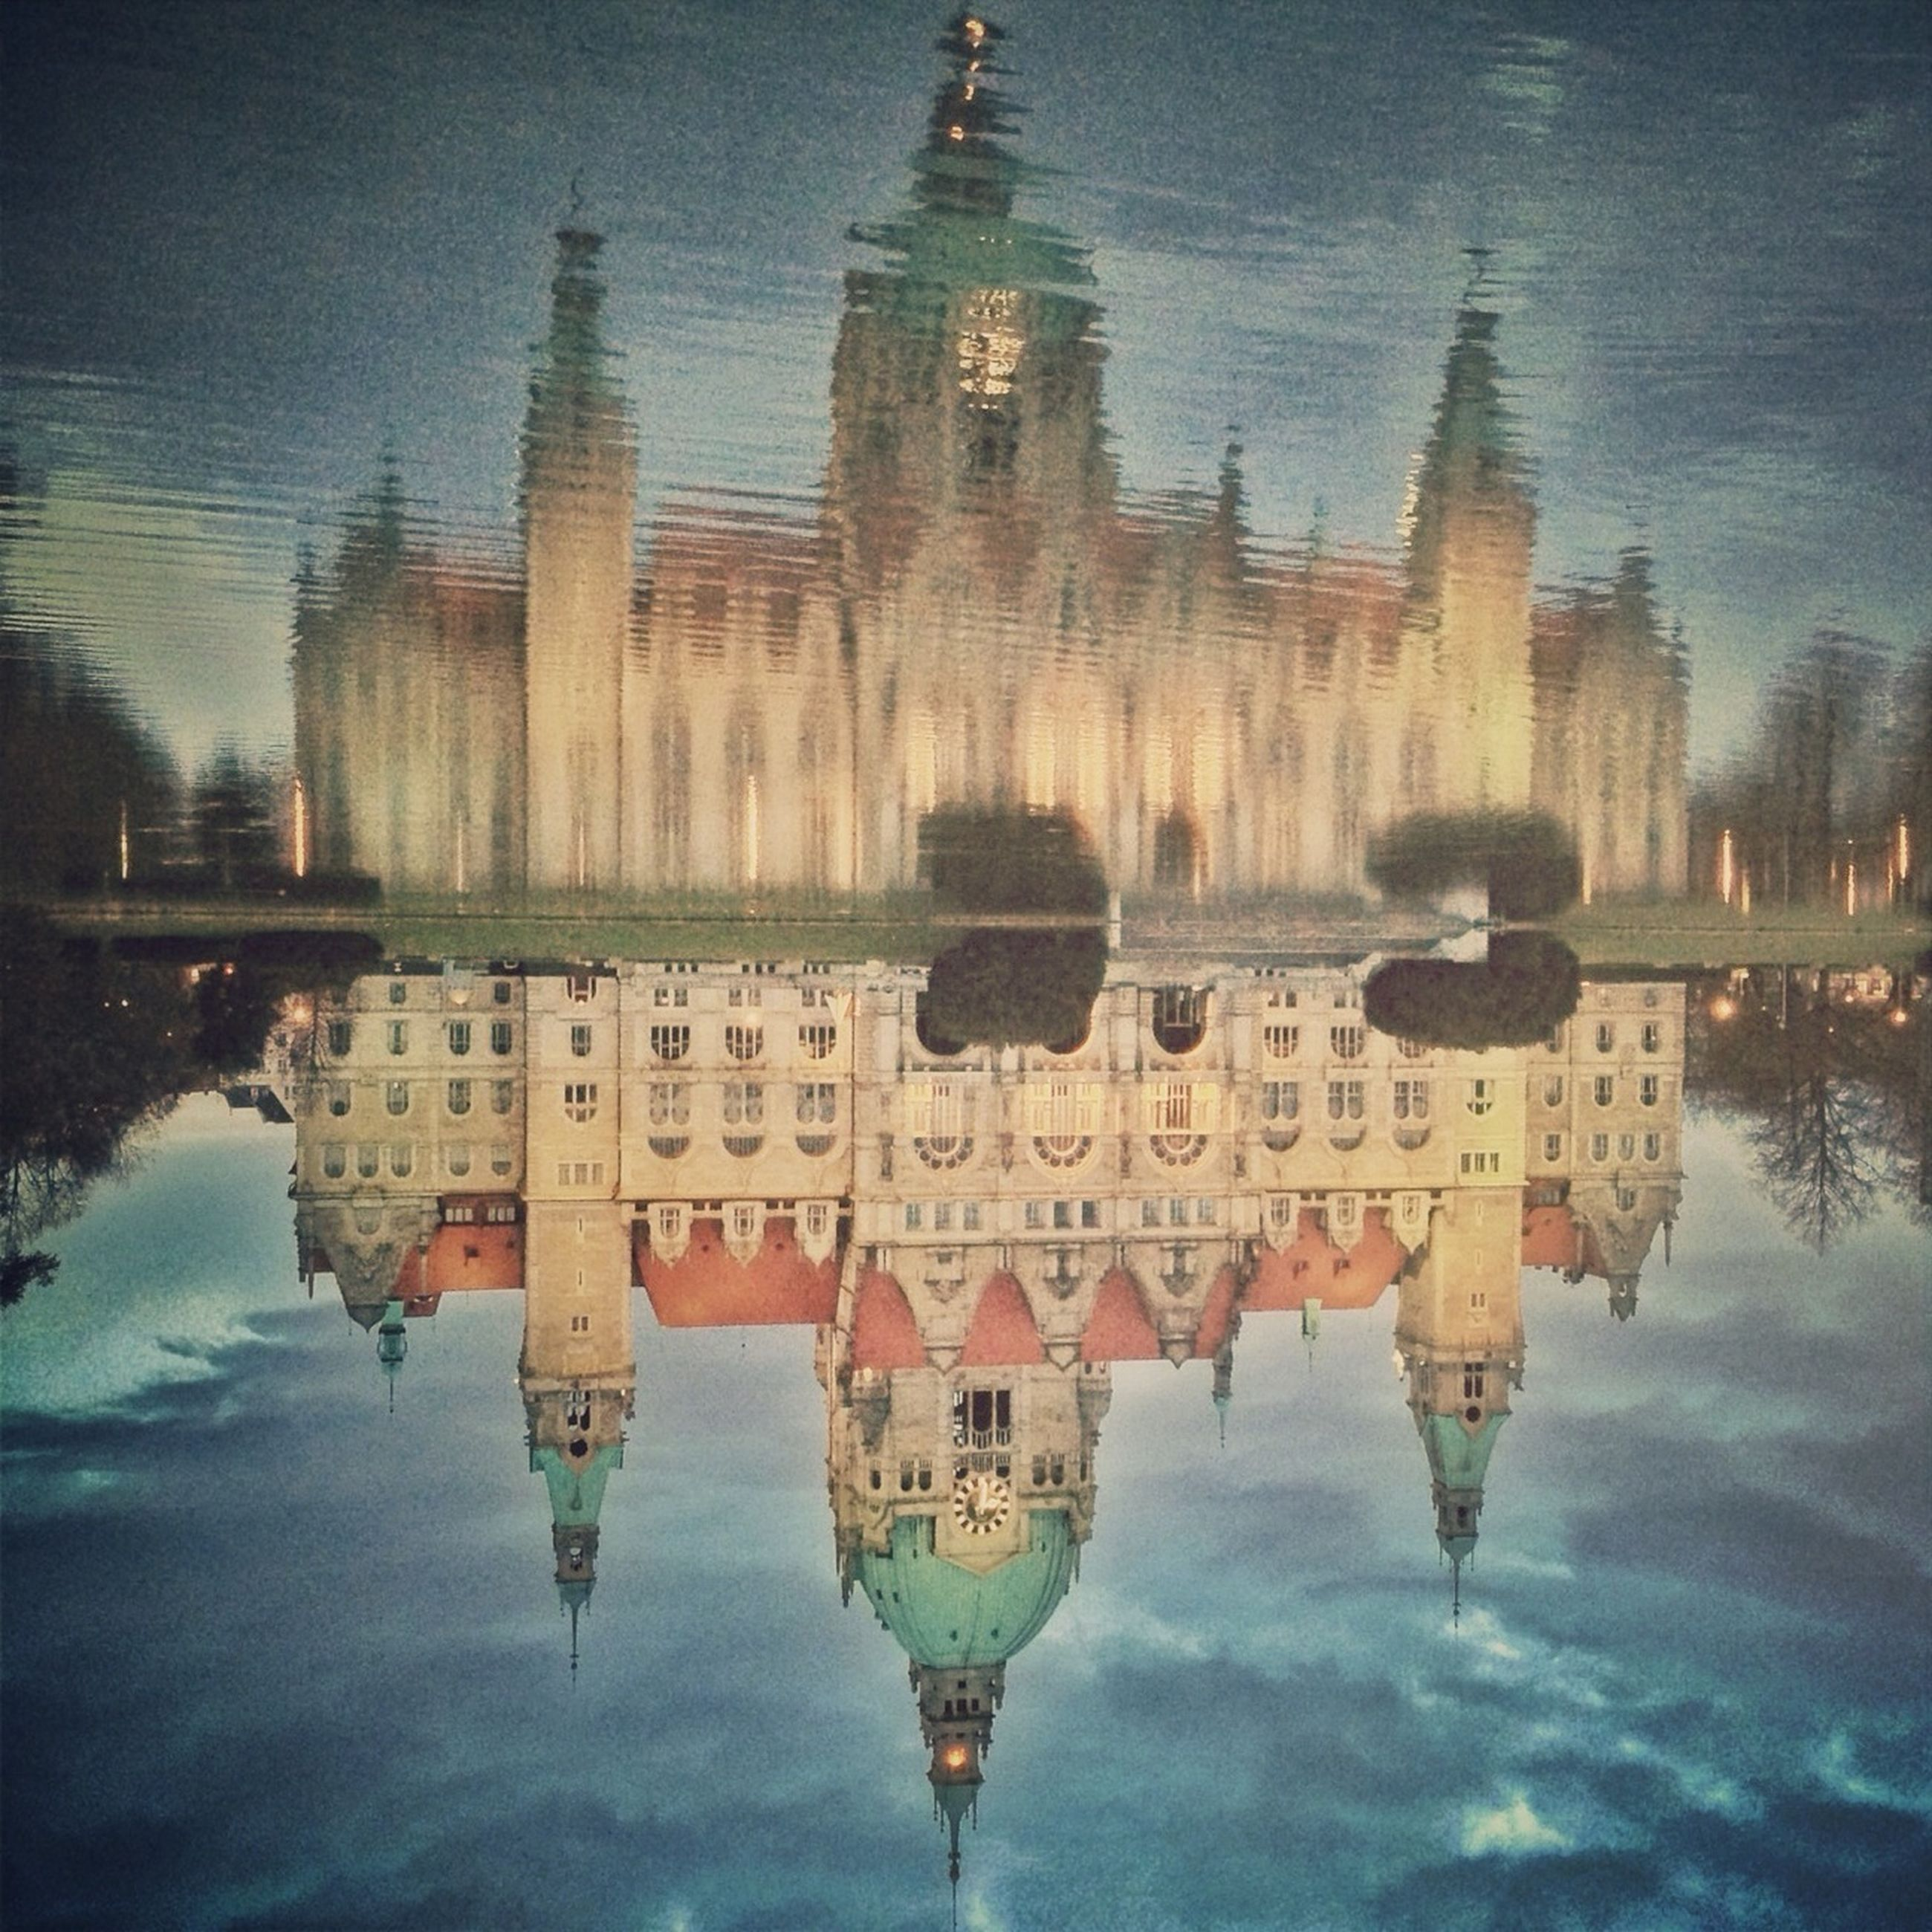 architecture, reflection, built structure, building exterior, water, sky, waterfront, place of worship, cloud - sky, religion, standing water, spirituality, travel destinations, dusk, famous place, lake, outdoors, travel, tourism, history